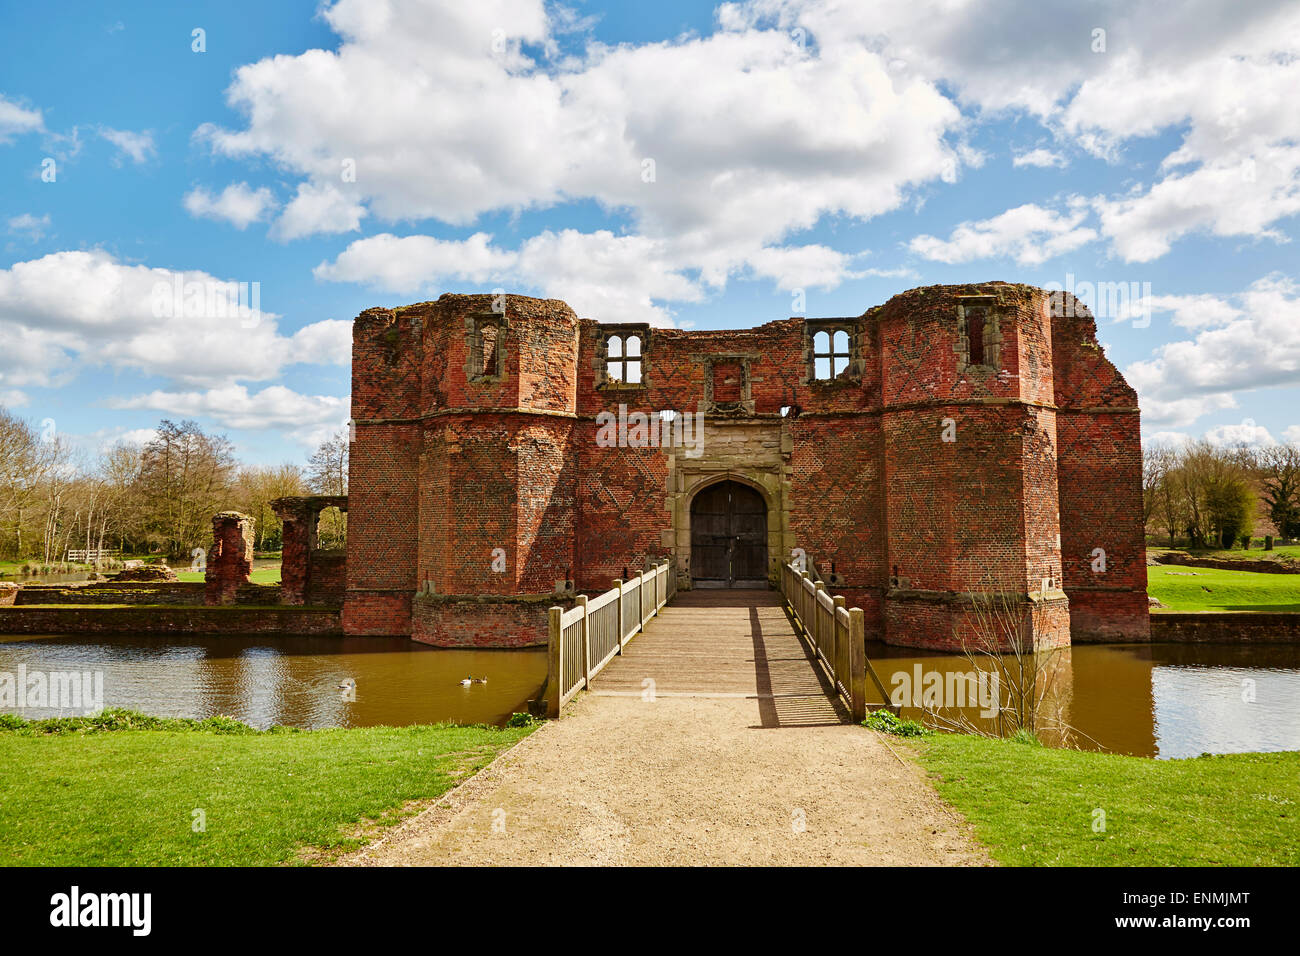 View of Kirby Muxloe Castle, Leicestershire. - Stock Image